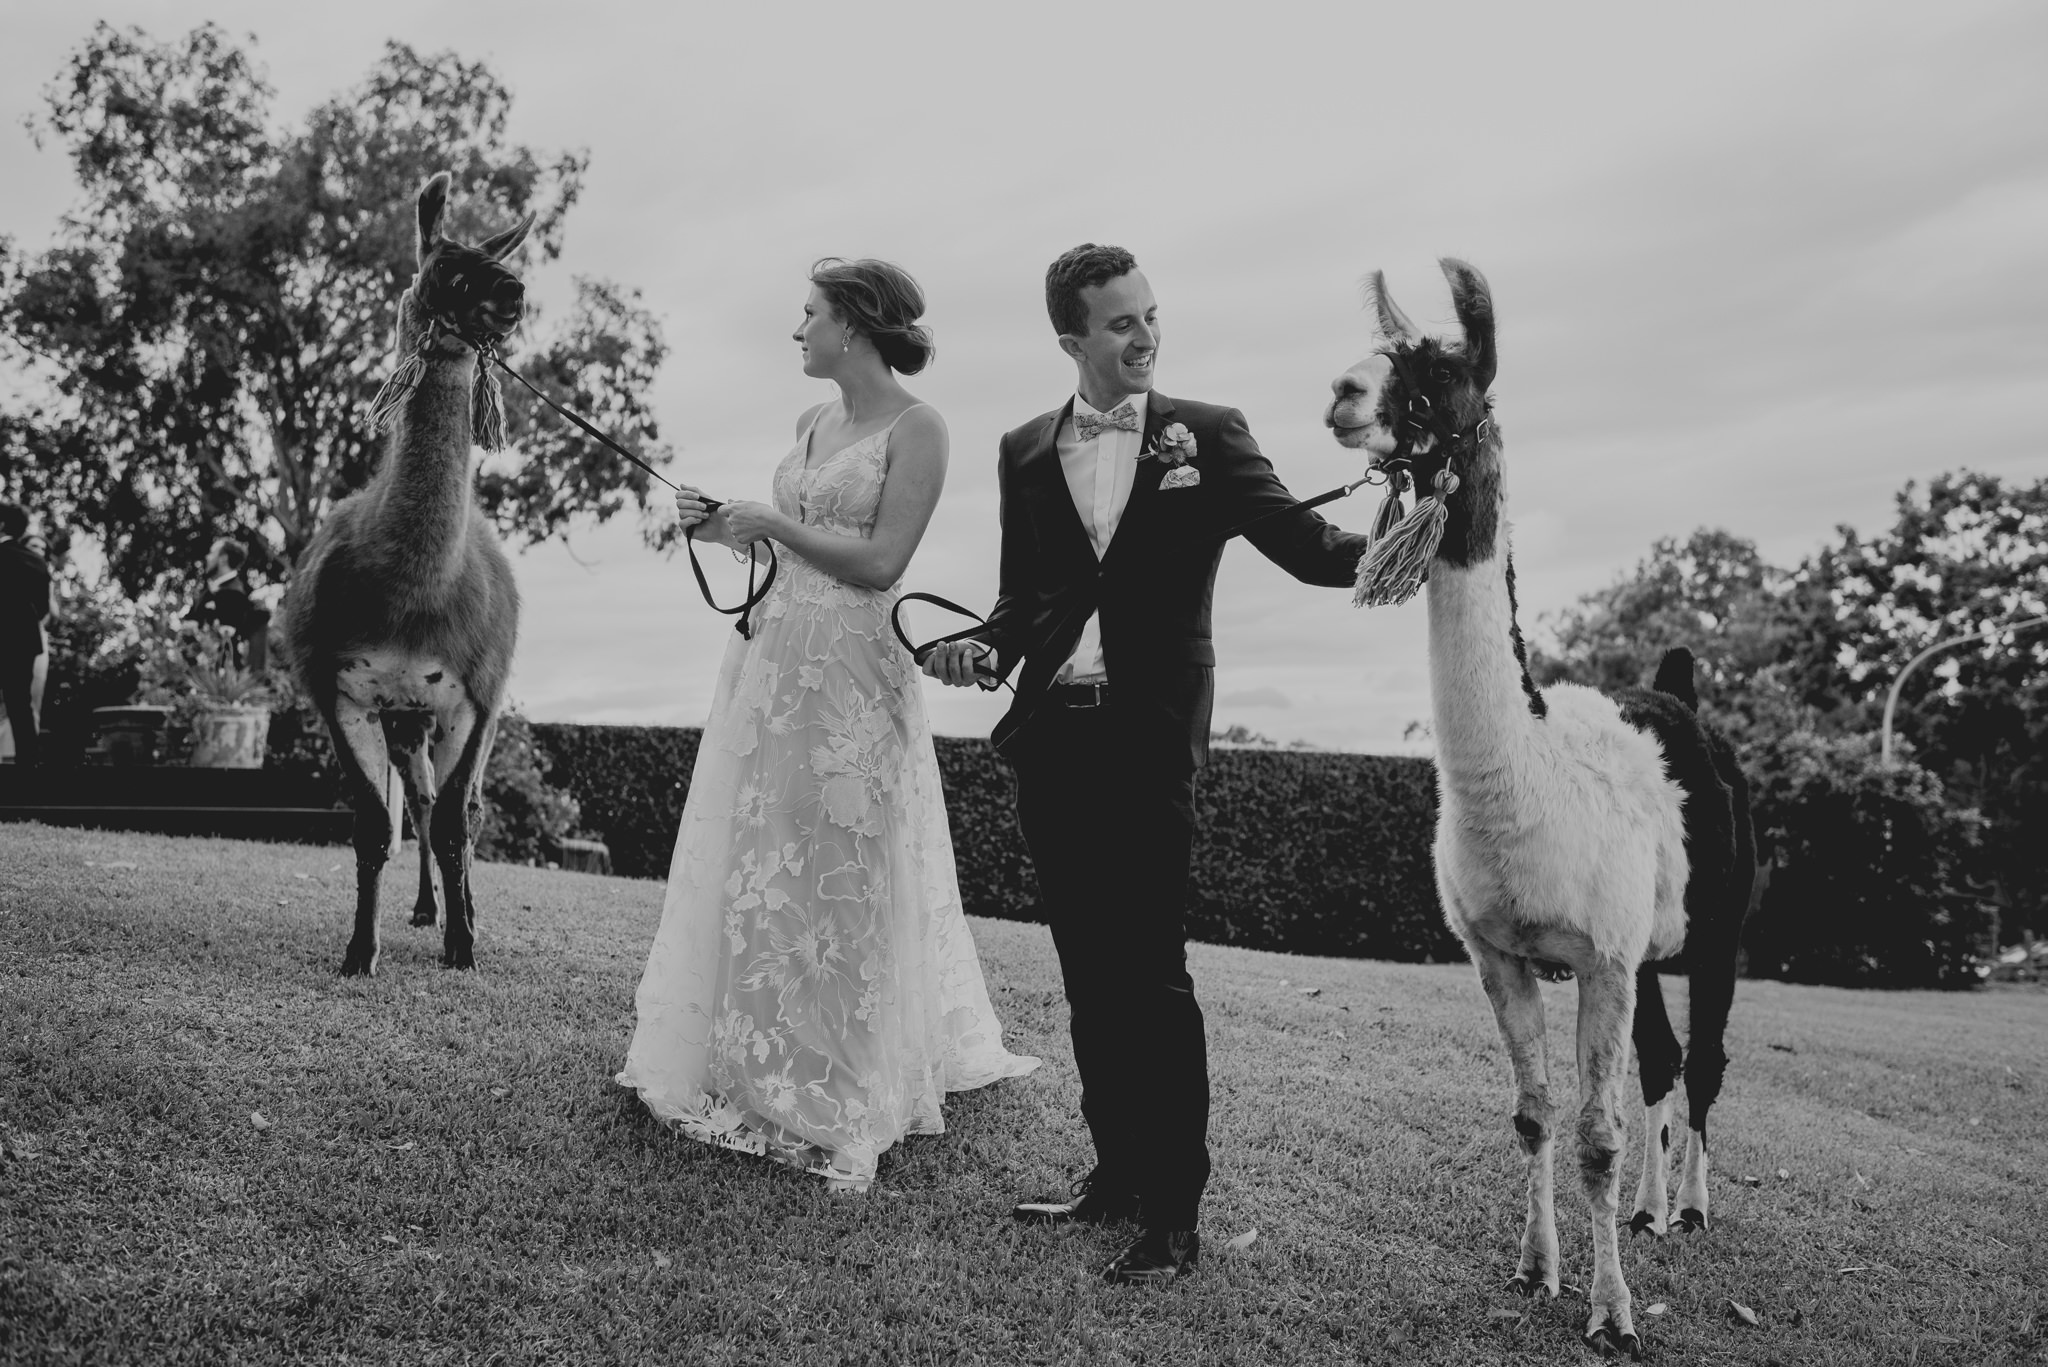 Bride and groom both hold and pat llamas on leashes